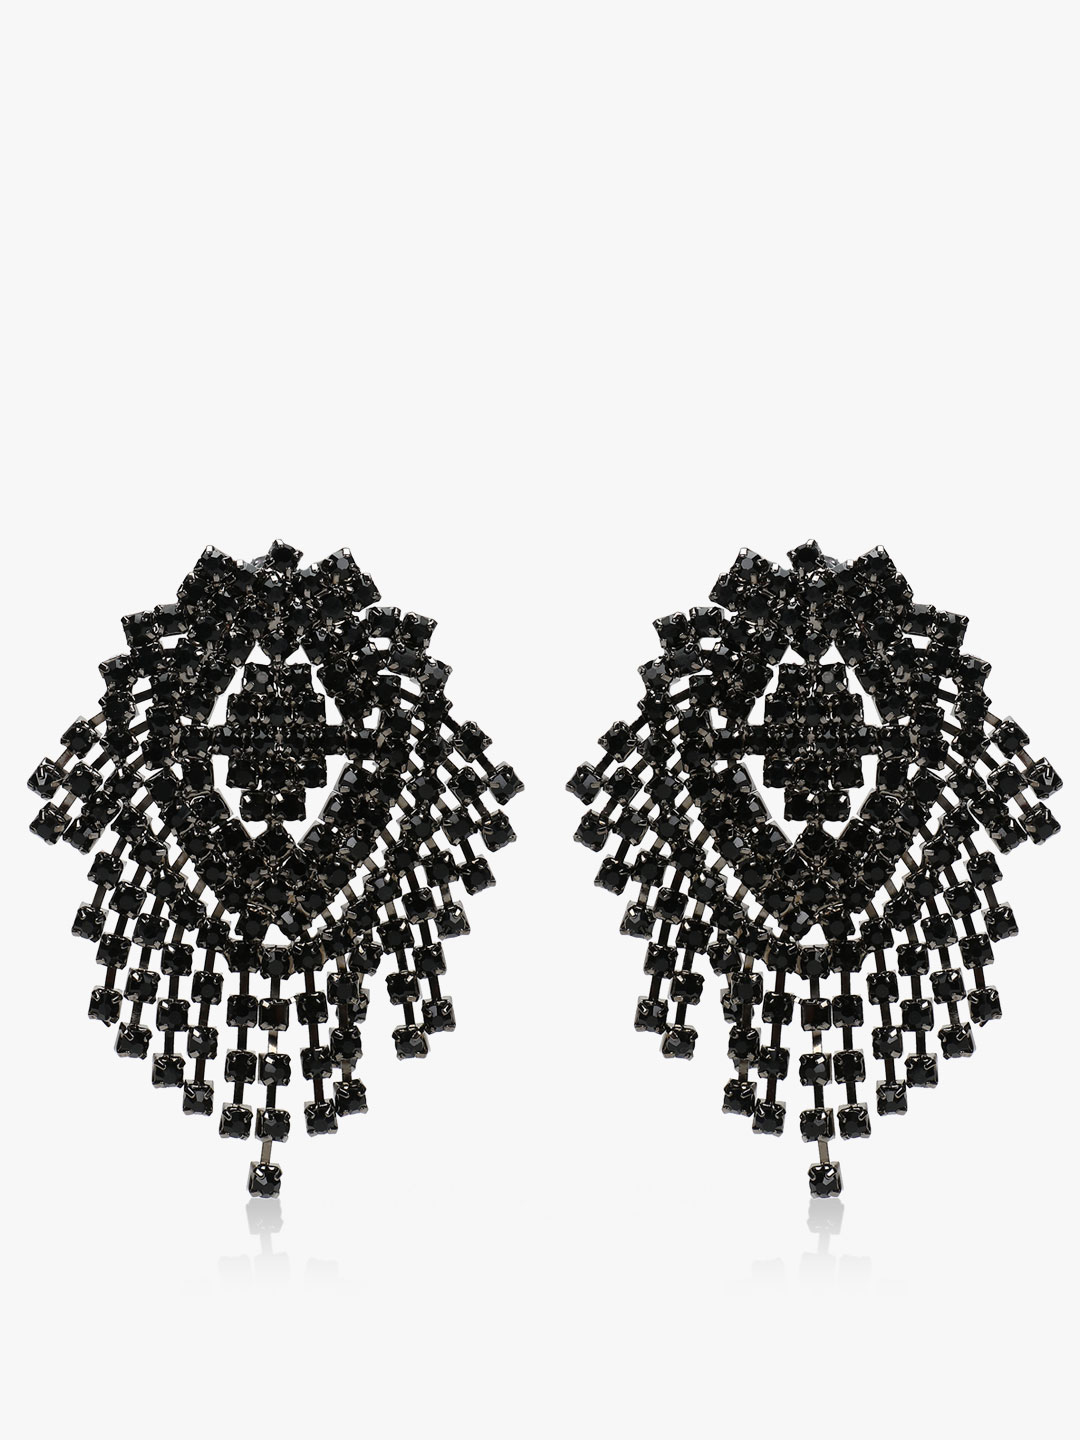 Style Fiesta Black Cluster Crystal Earrings 1